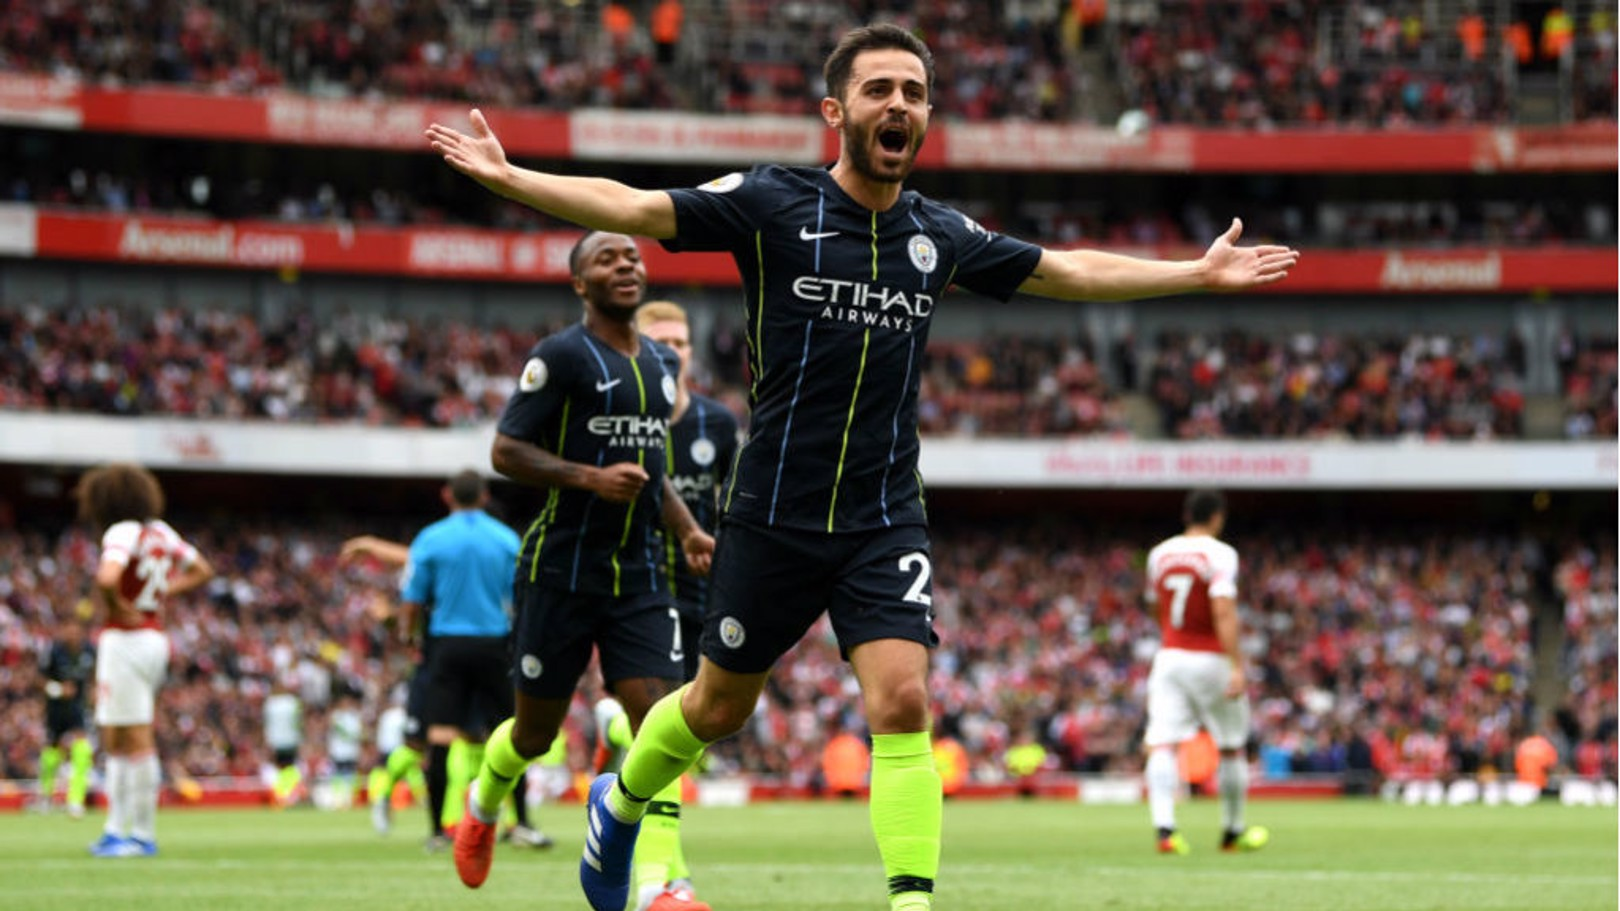 SILVA STREAK: Bernardo has made a superb start to the new season with Manchester City